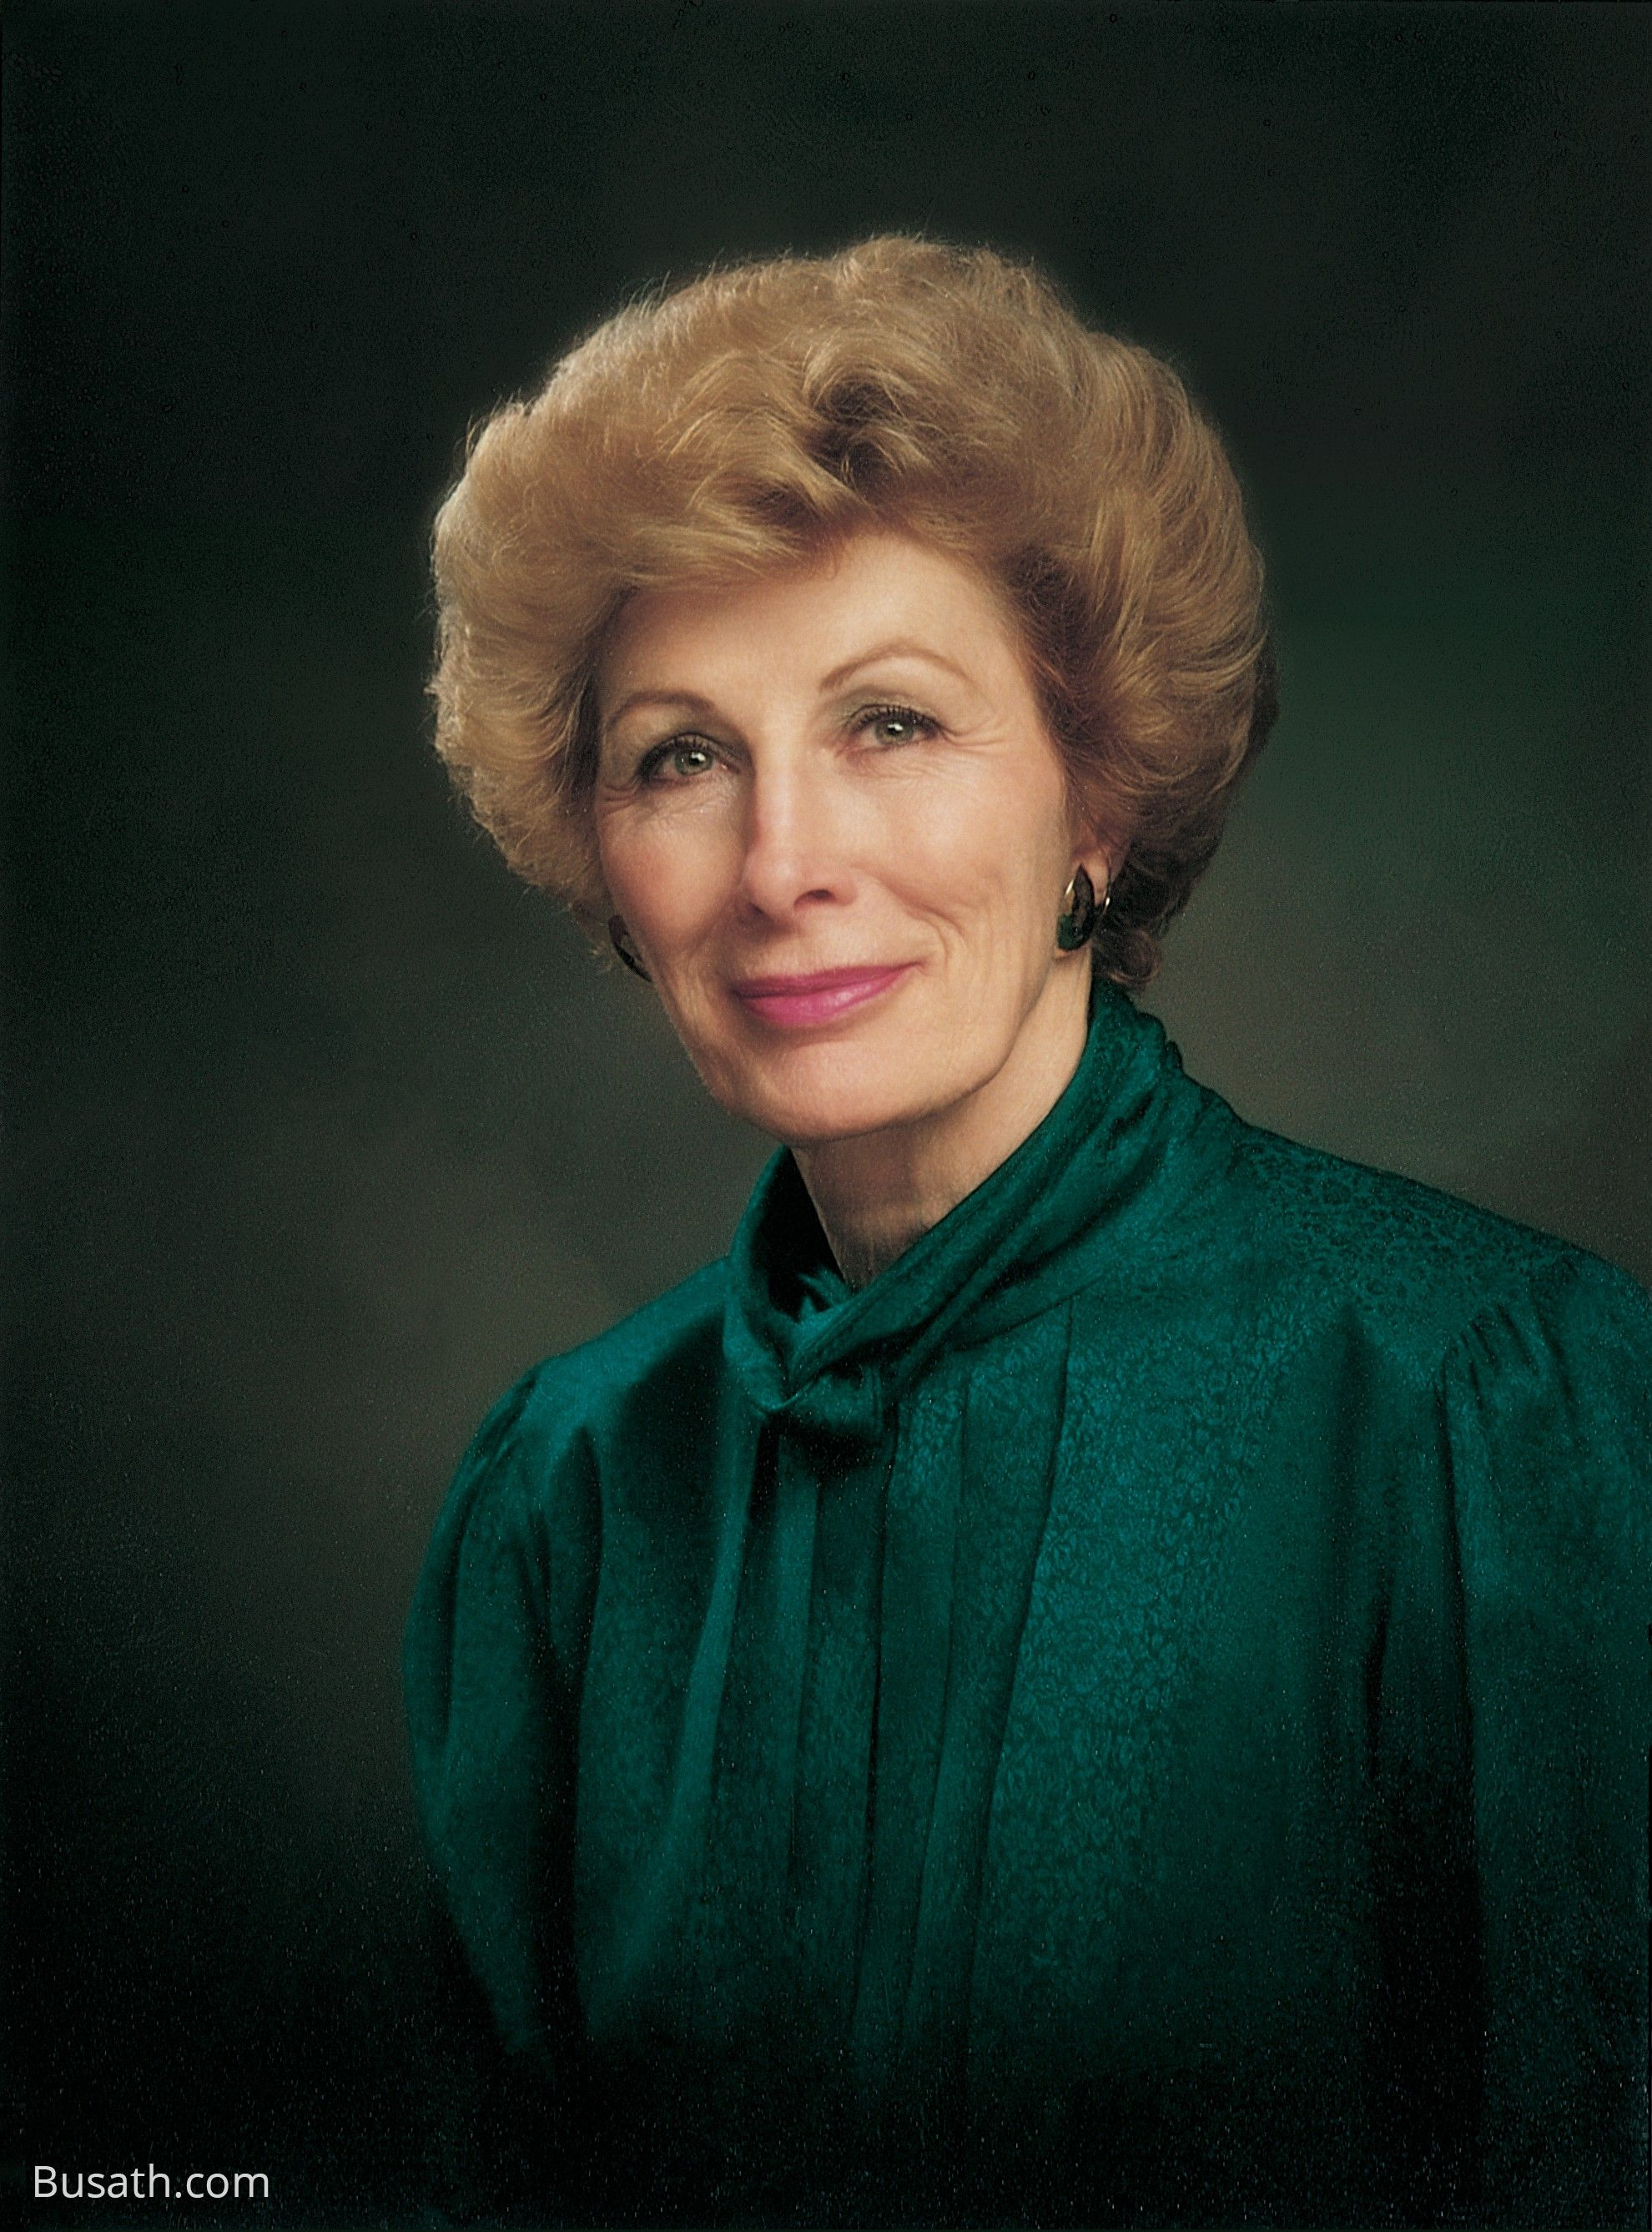 A portrait of Elaine Low Jack, who served as the 12th general president of the Relief Society from 1990 to 1997.